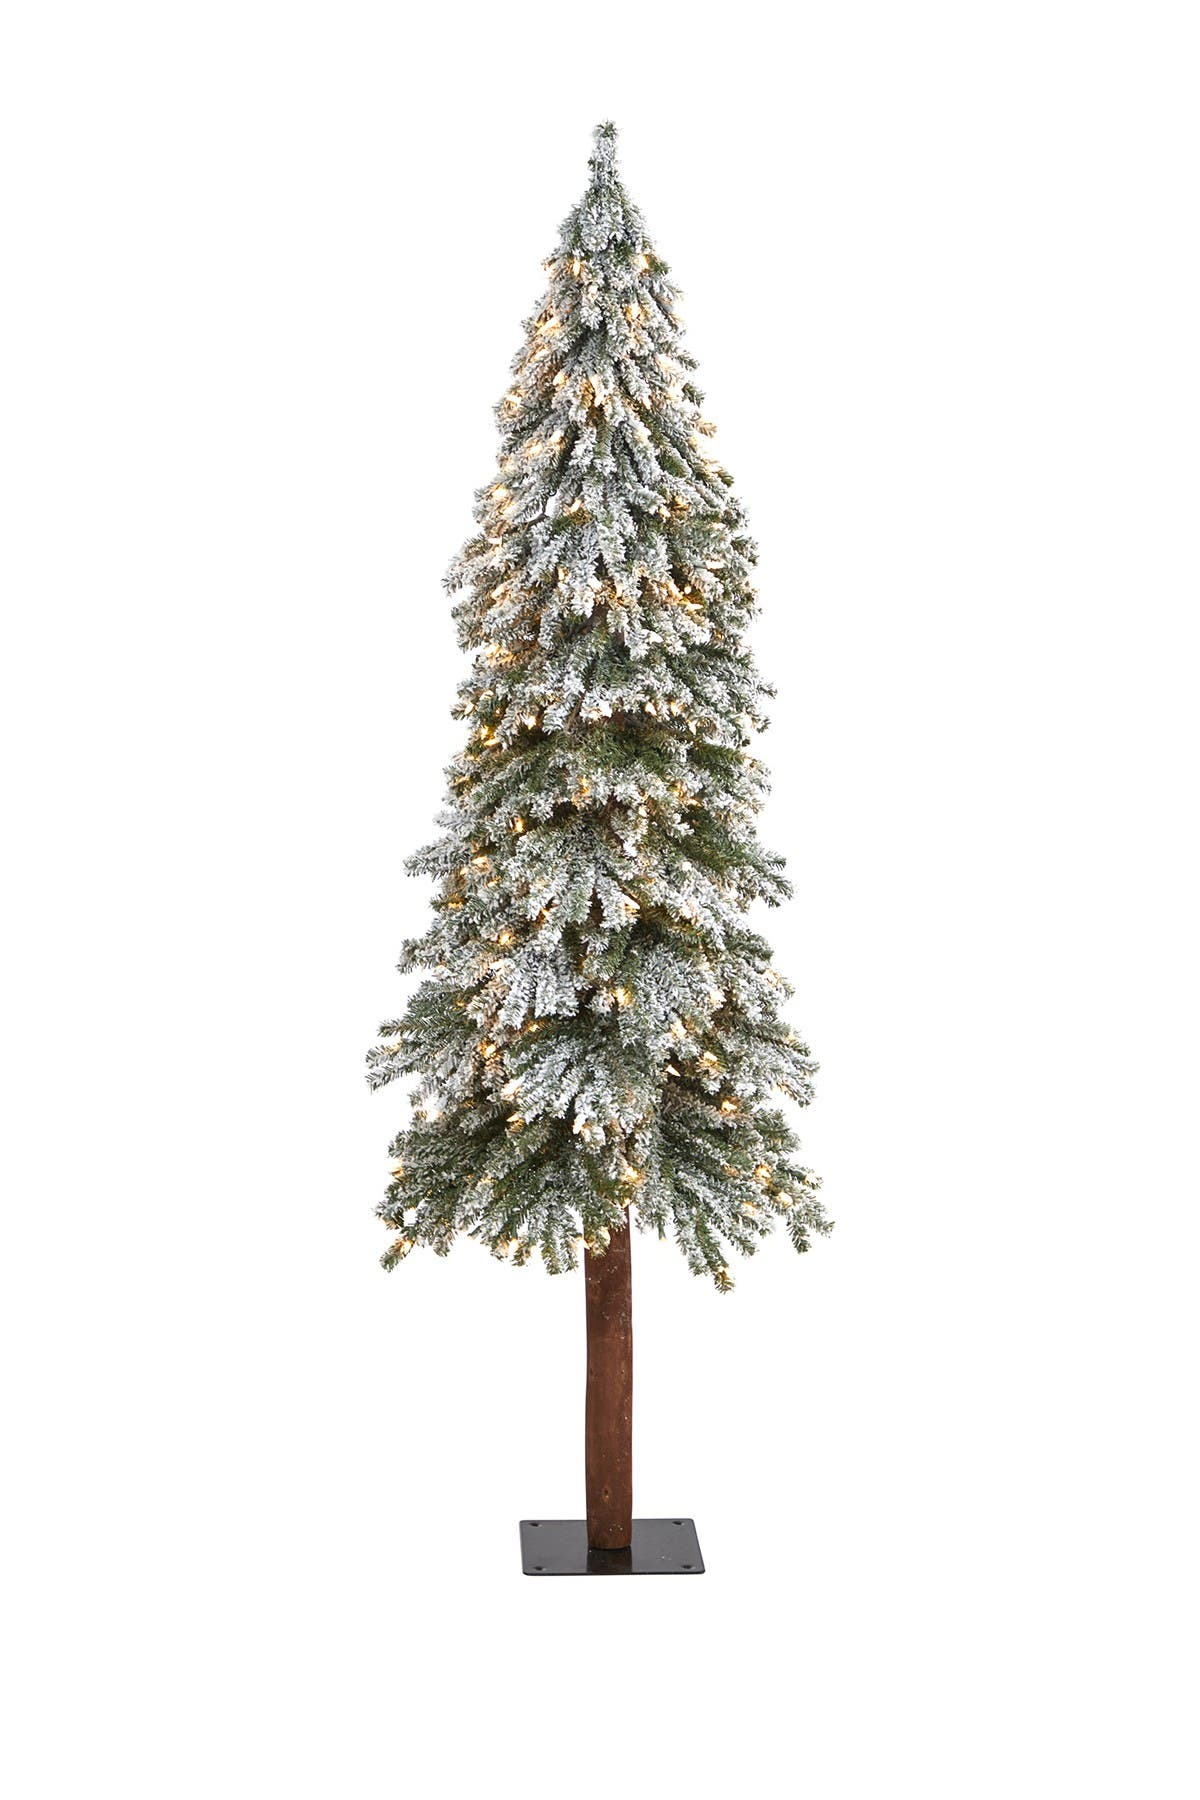 Image of NEARLY NATURAL 6ft. Flocked Grand Alpine Artificial Christmas Tree with 300 Clear Lights on Natural Trunk